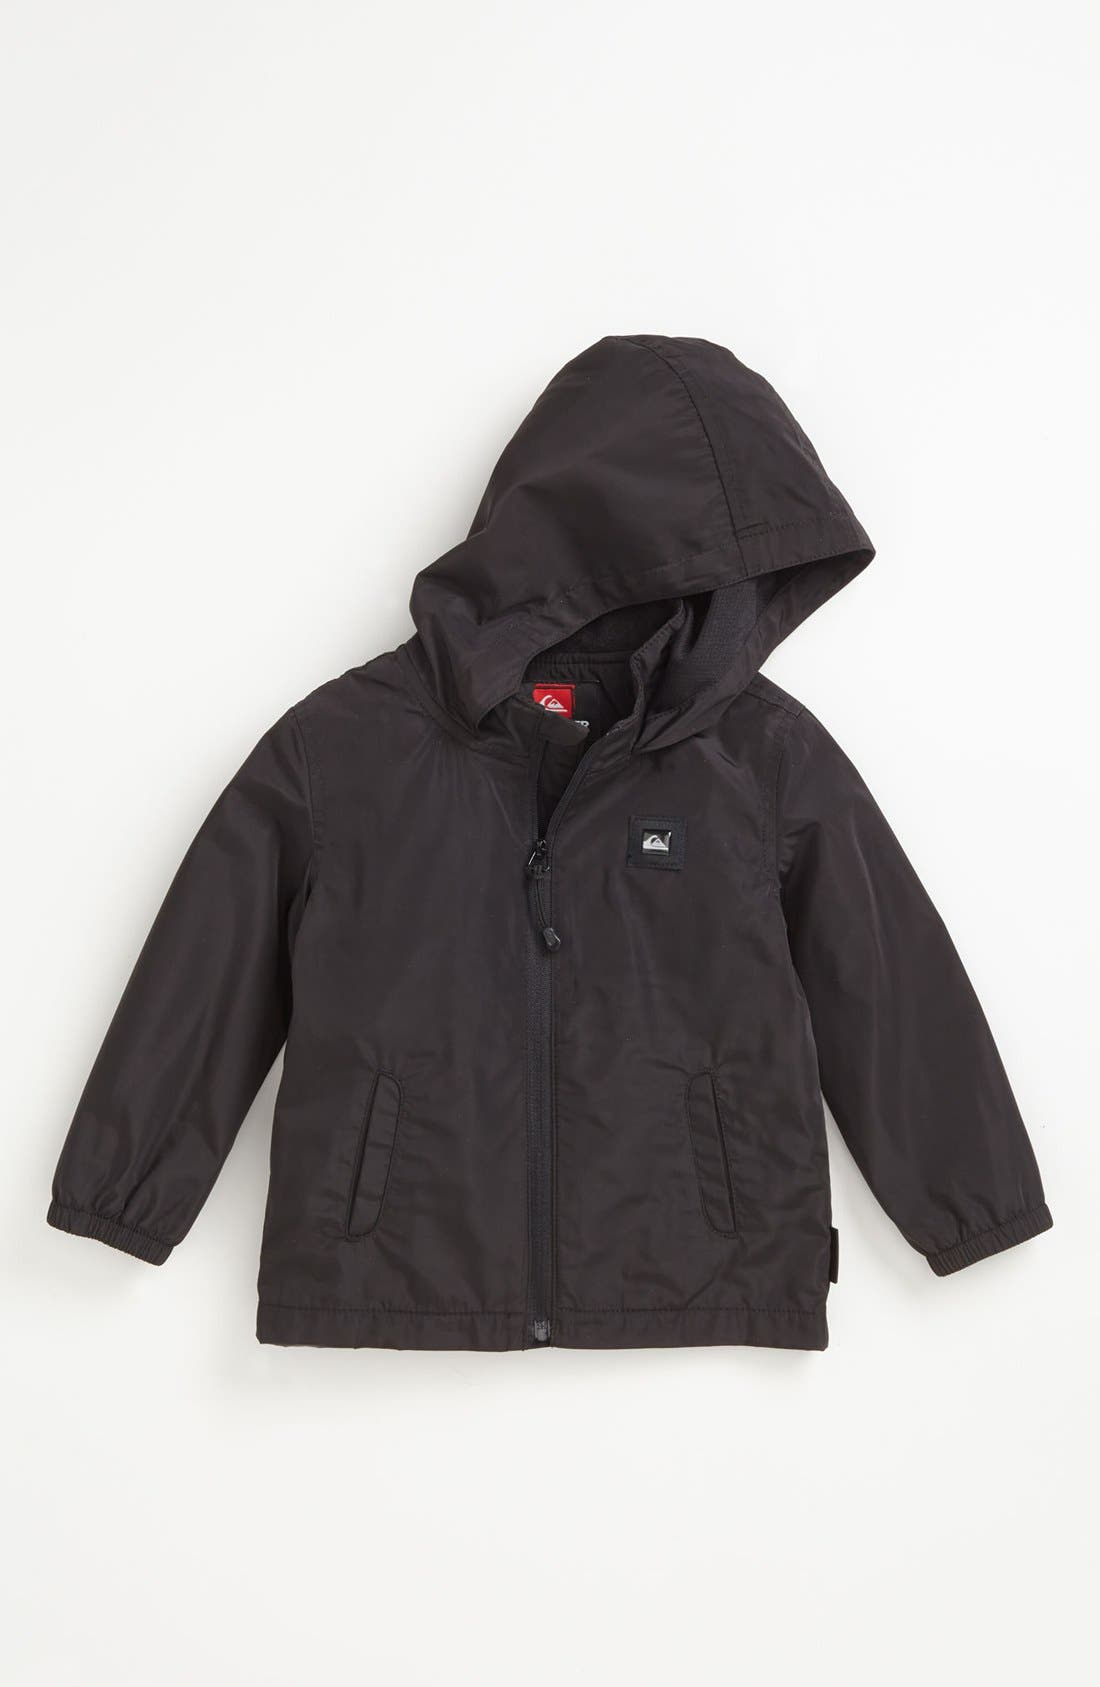 Alternate Image 1 Selected - Quiksilver 'Shell Out' Jacket (Baby Boys)